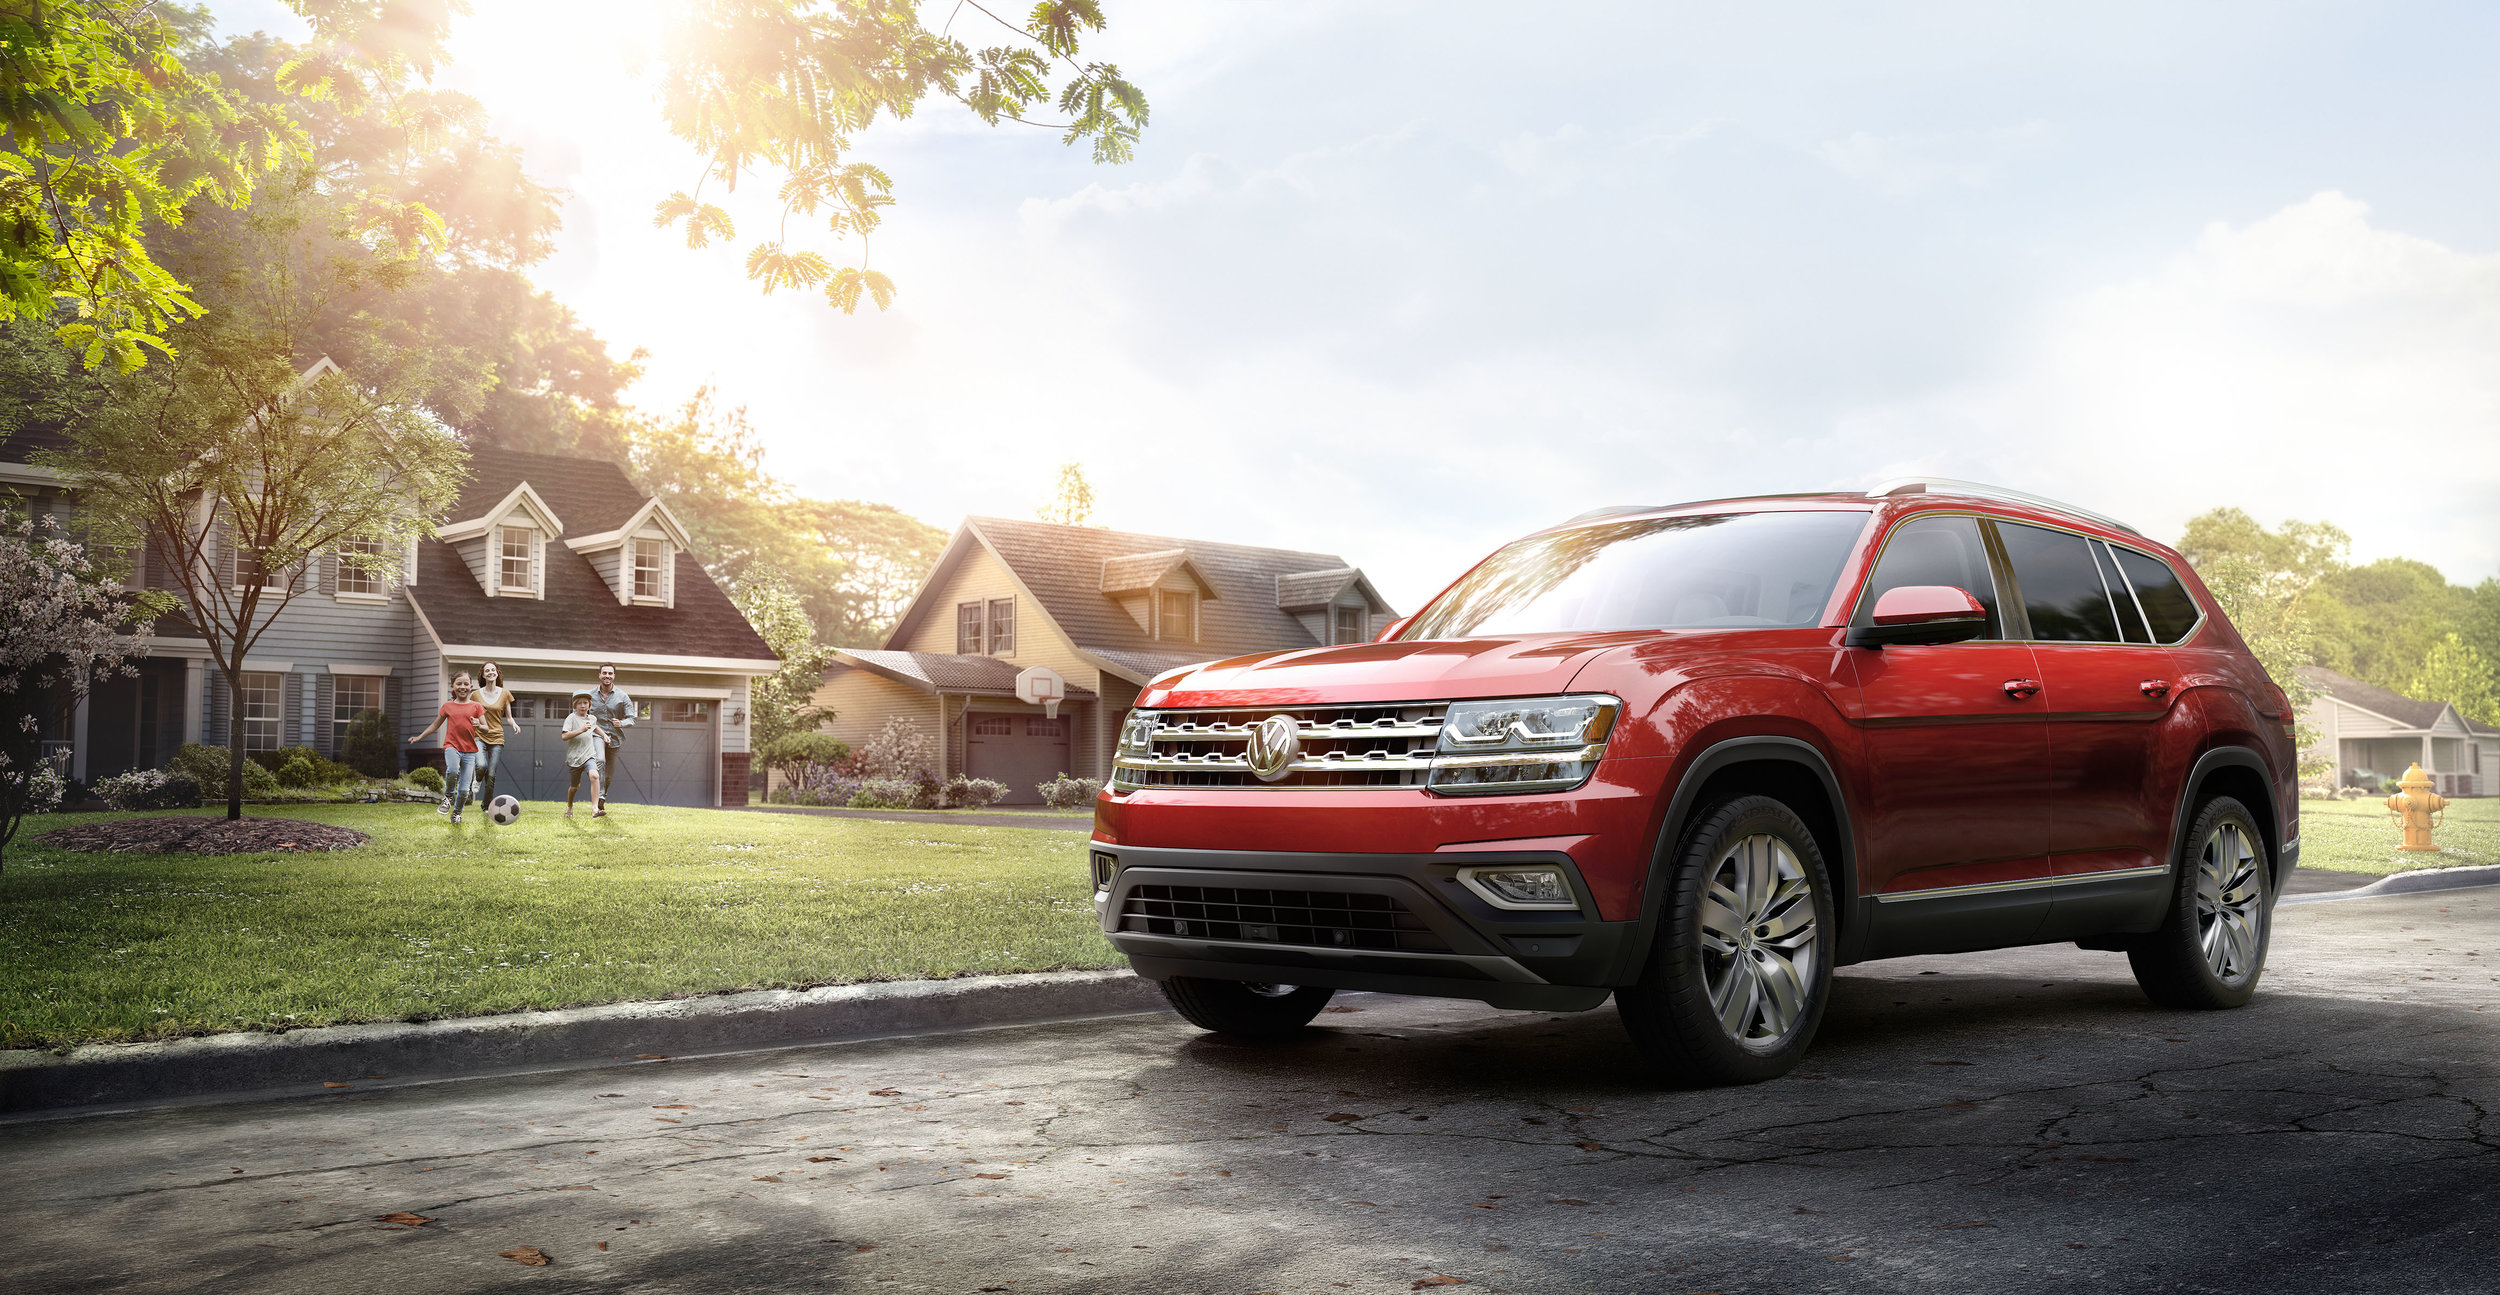 VW ATLAS NEIGHBOURHOOD WEB.jpg